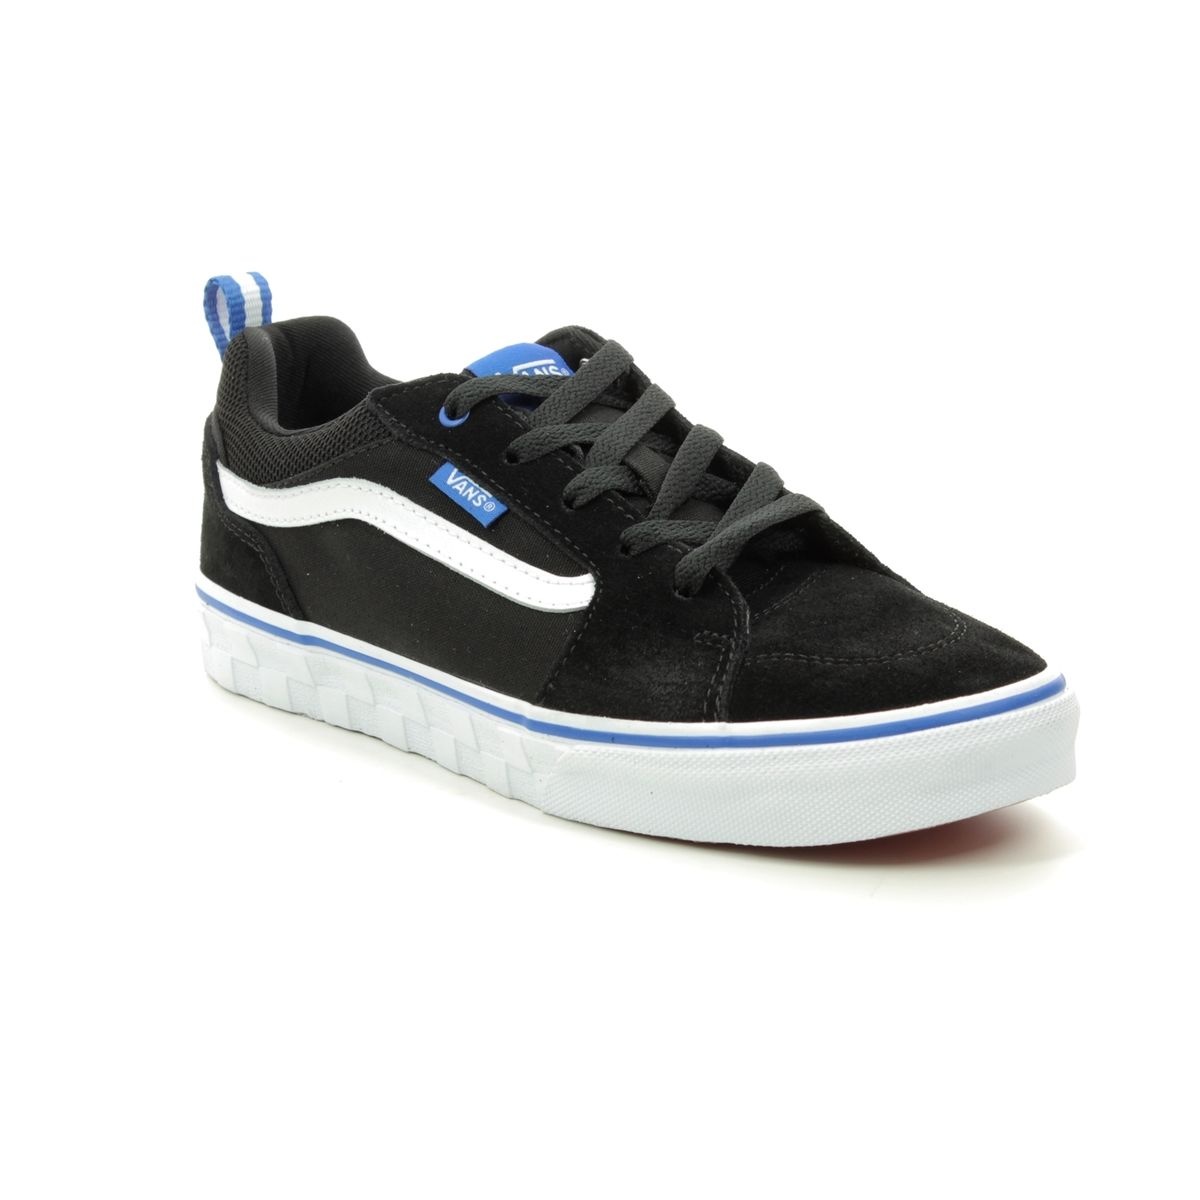 78139fd6c Vans Filmore Checker VN0A3MVPV-WC Black suede or snake trainers